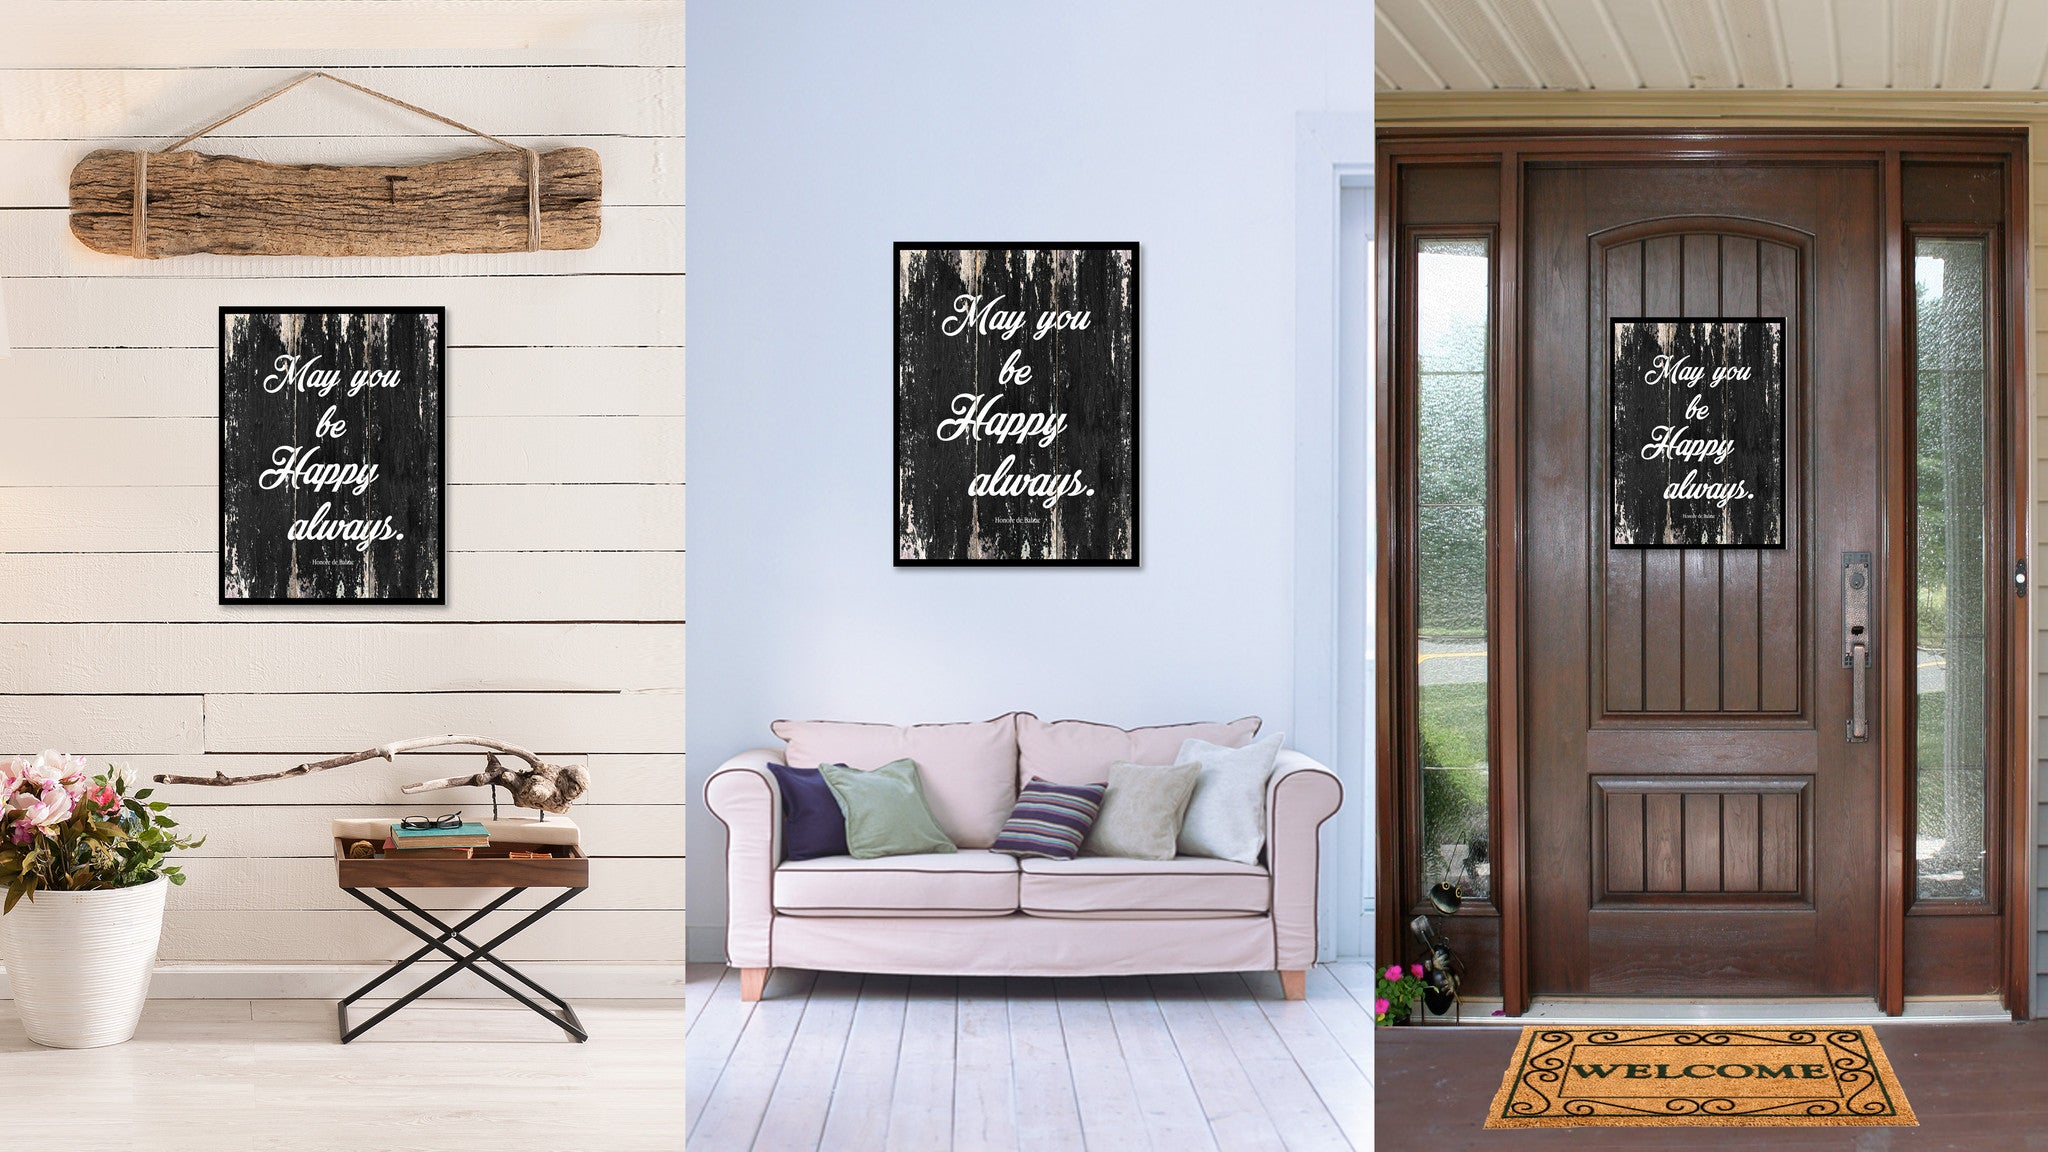 May you be happy always Motivational Quote Saying Canvas Print with Picture Frame Home Decor Wall Art